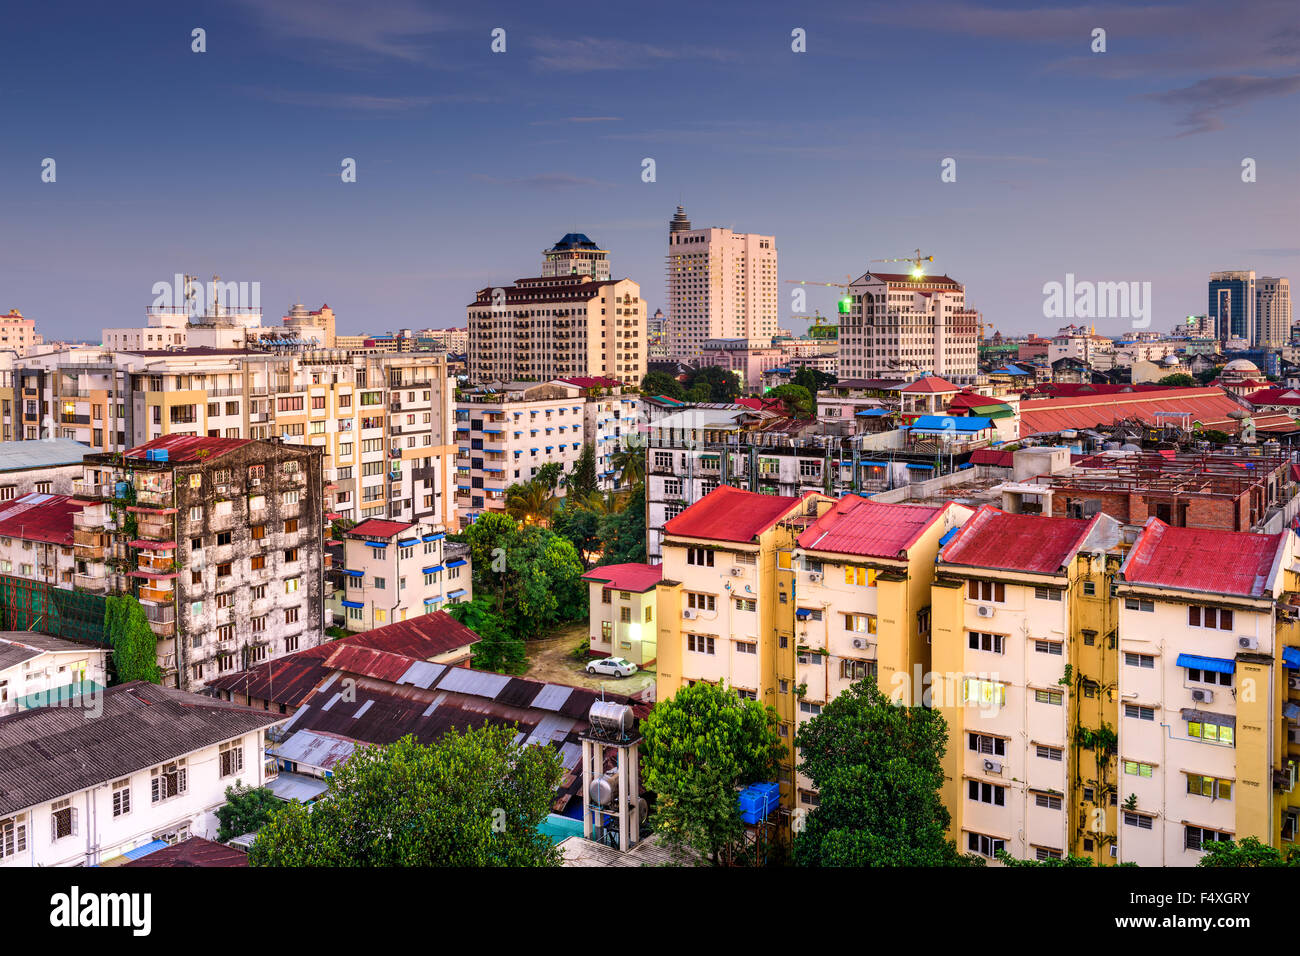 Yangon, Myanmar downtown city skyline. - Stock Image